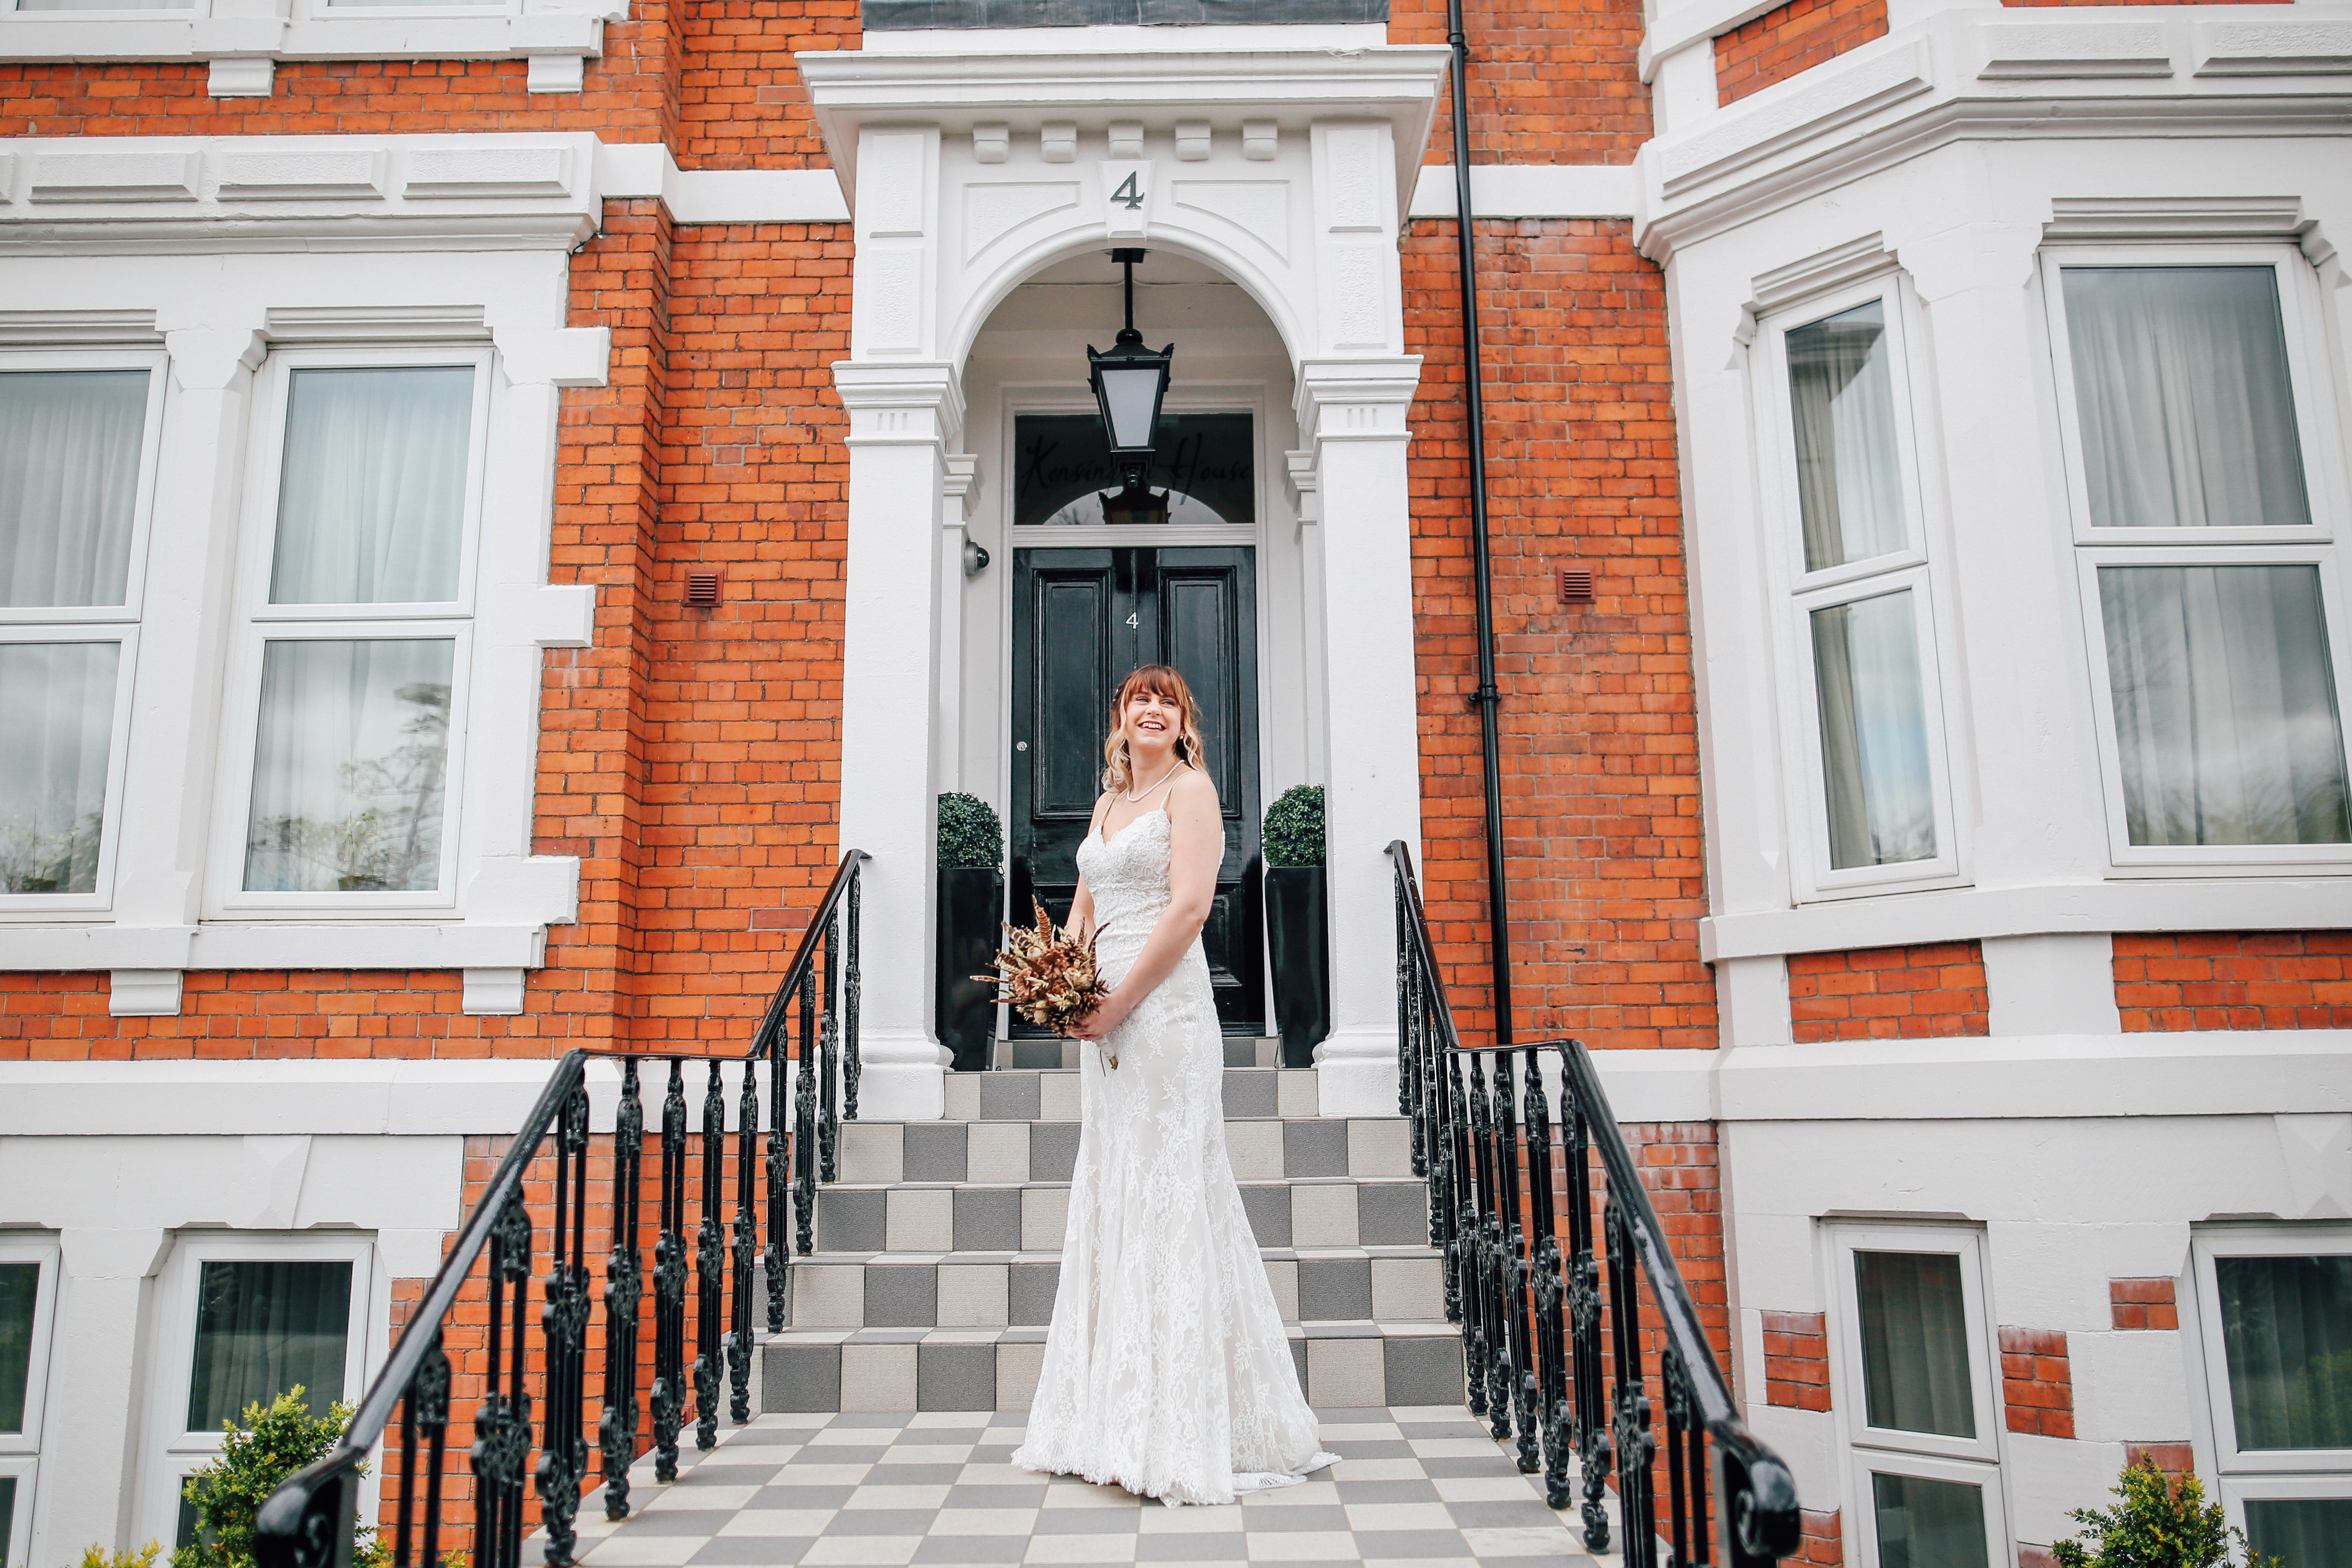 Bride in front of house Manchester Wedding Photography